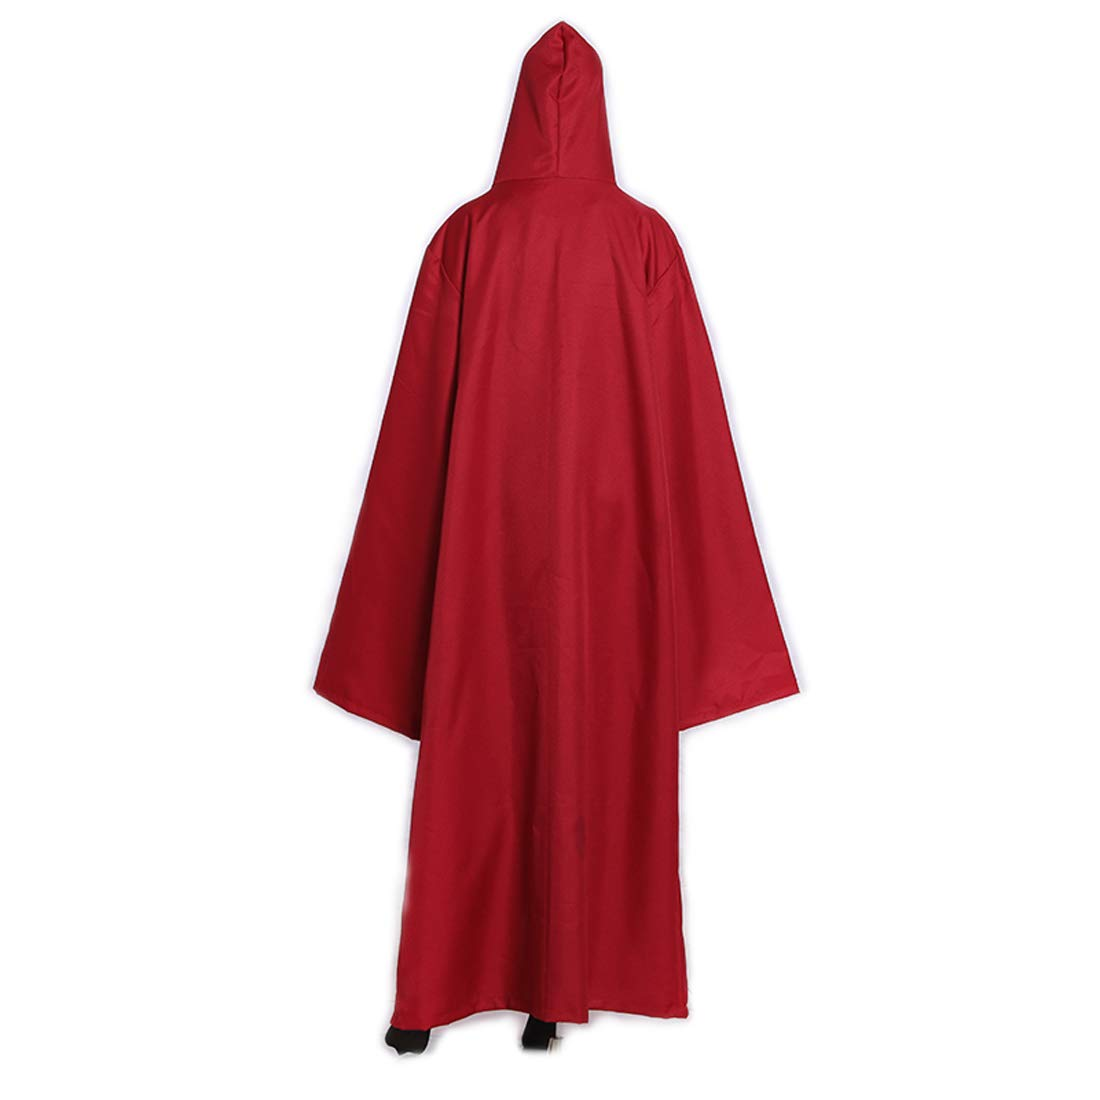 Wgior Men Tunic Hooded Robe Cloak Knight Fancy Cool Halloween Cosplay Costume (L, Red) by Wgior (Image #2)